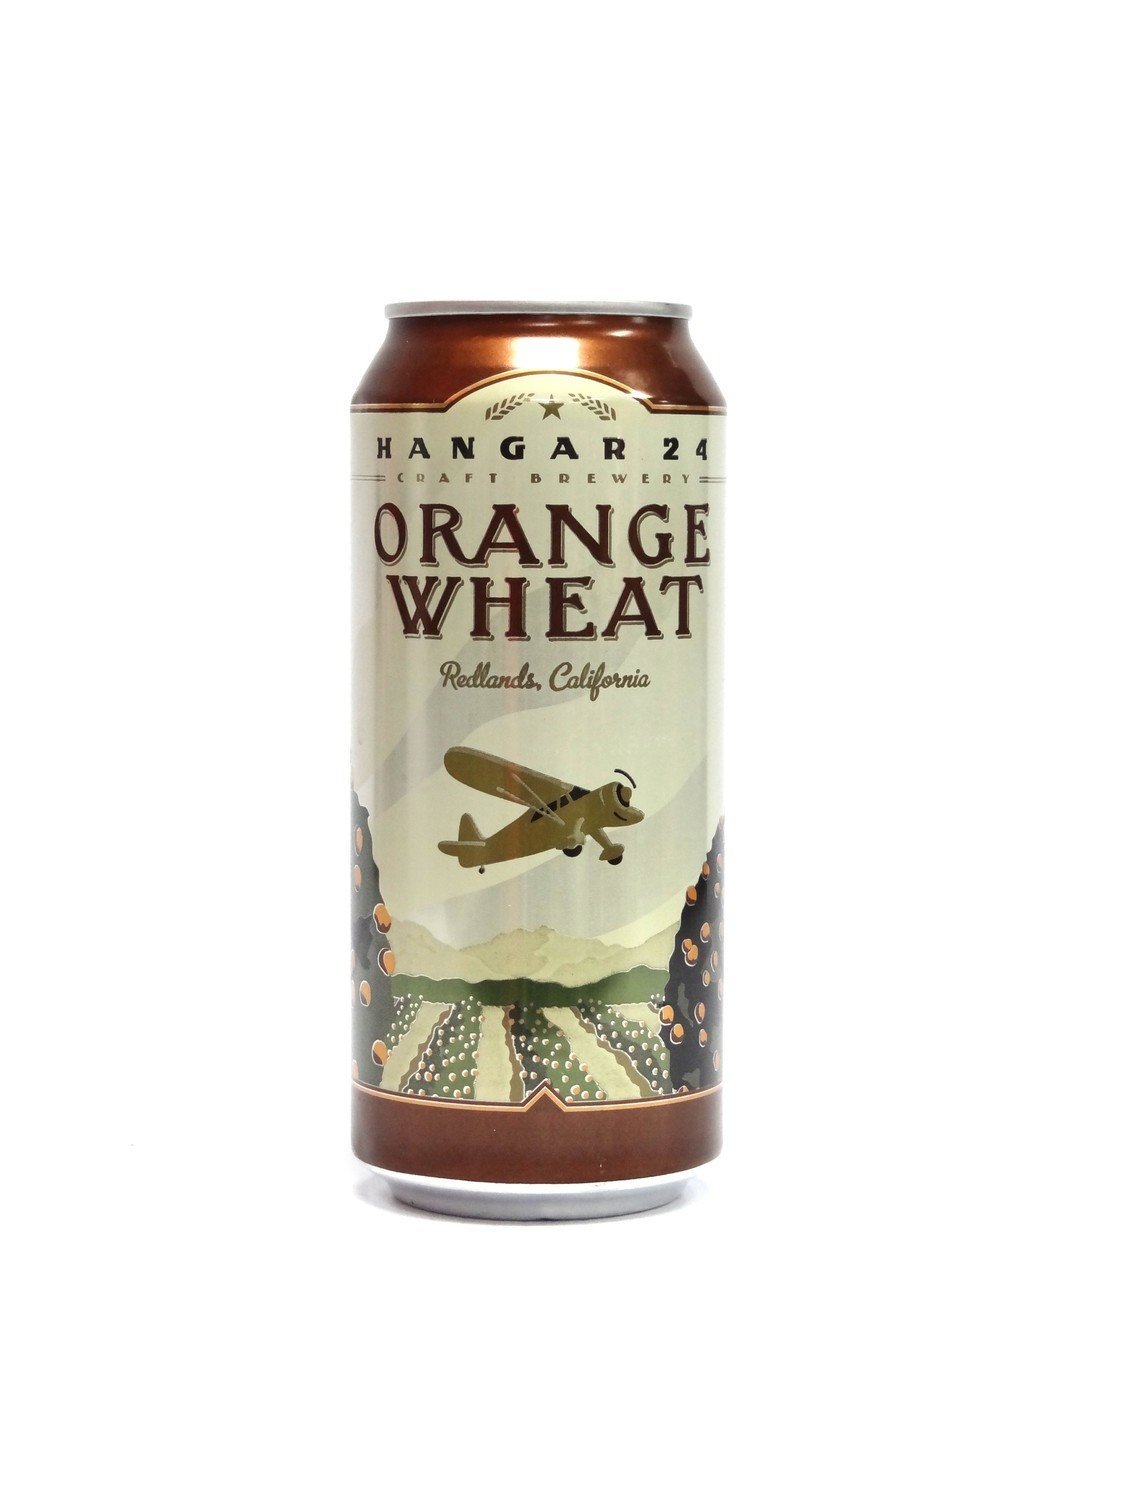 Orange Wheat By Hangar 24 from Redlands, CA 16oz Single Can (F2-6)